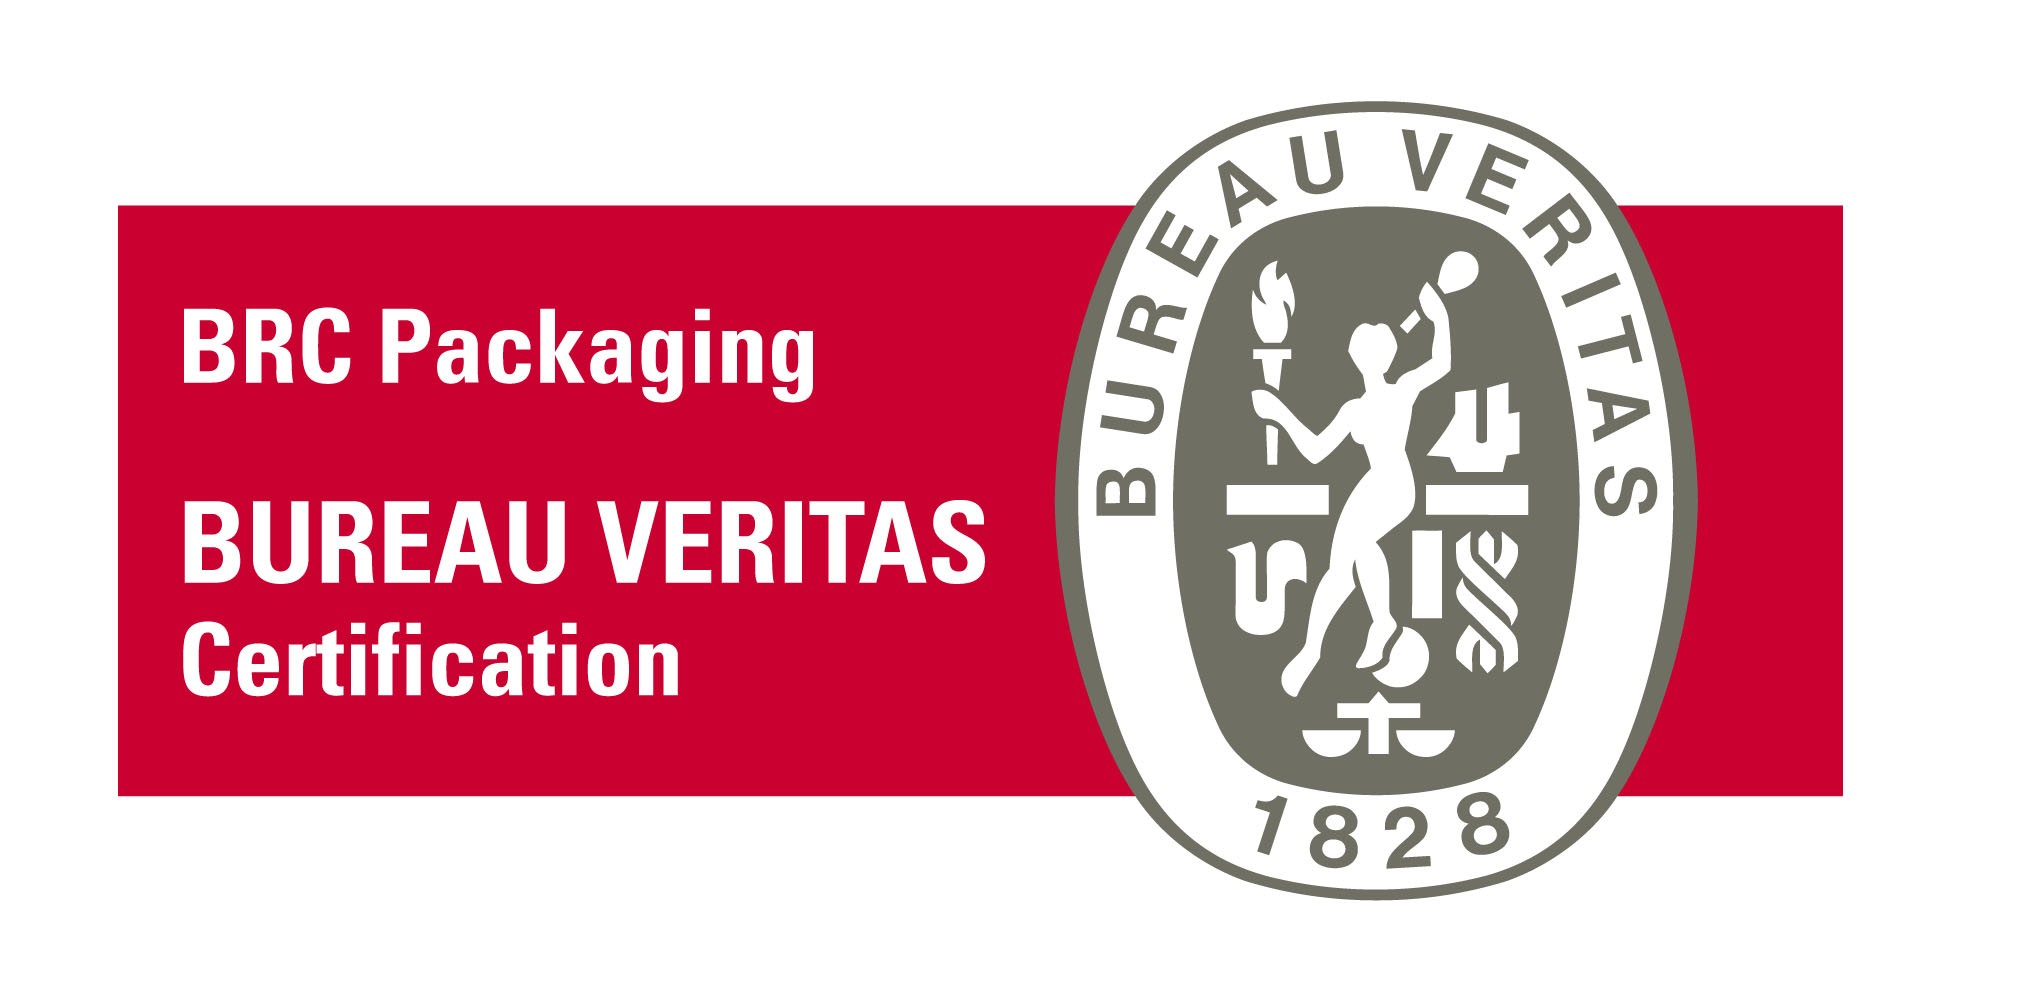 Bureau Veritas BRC Packaging